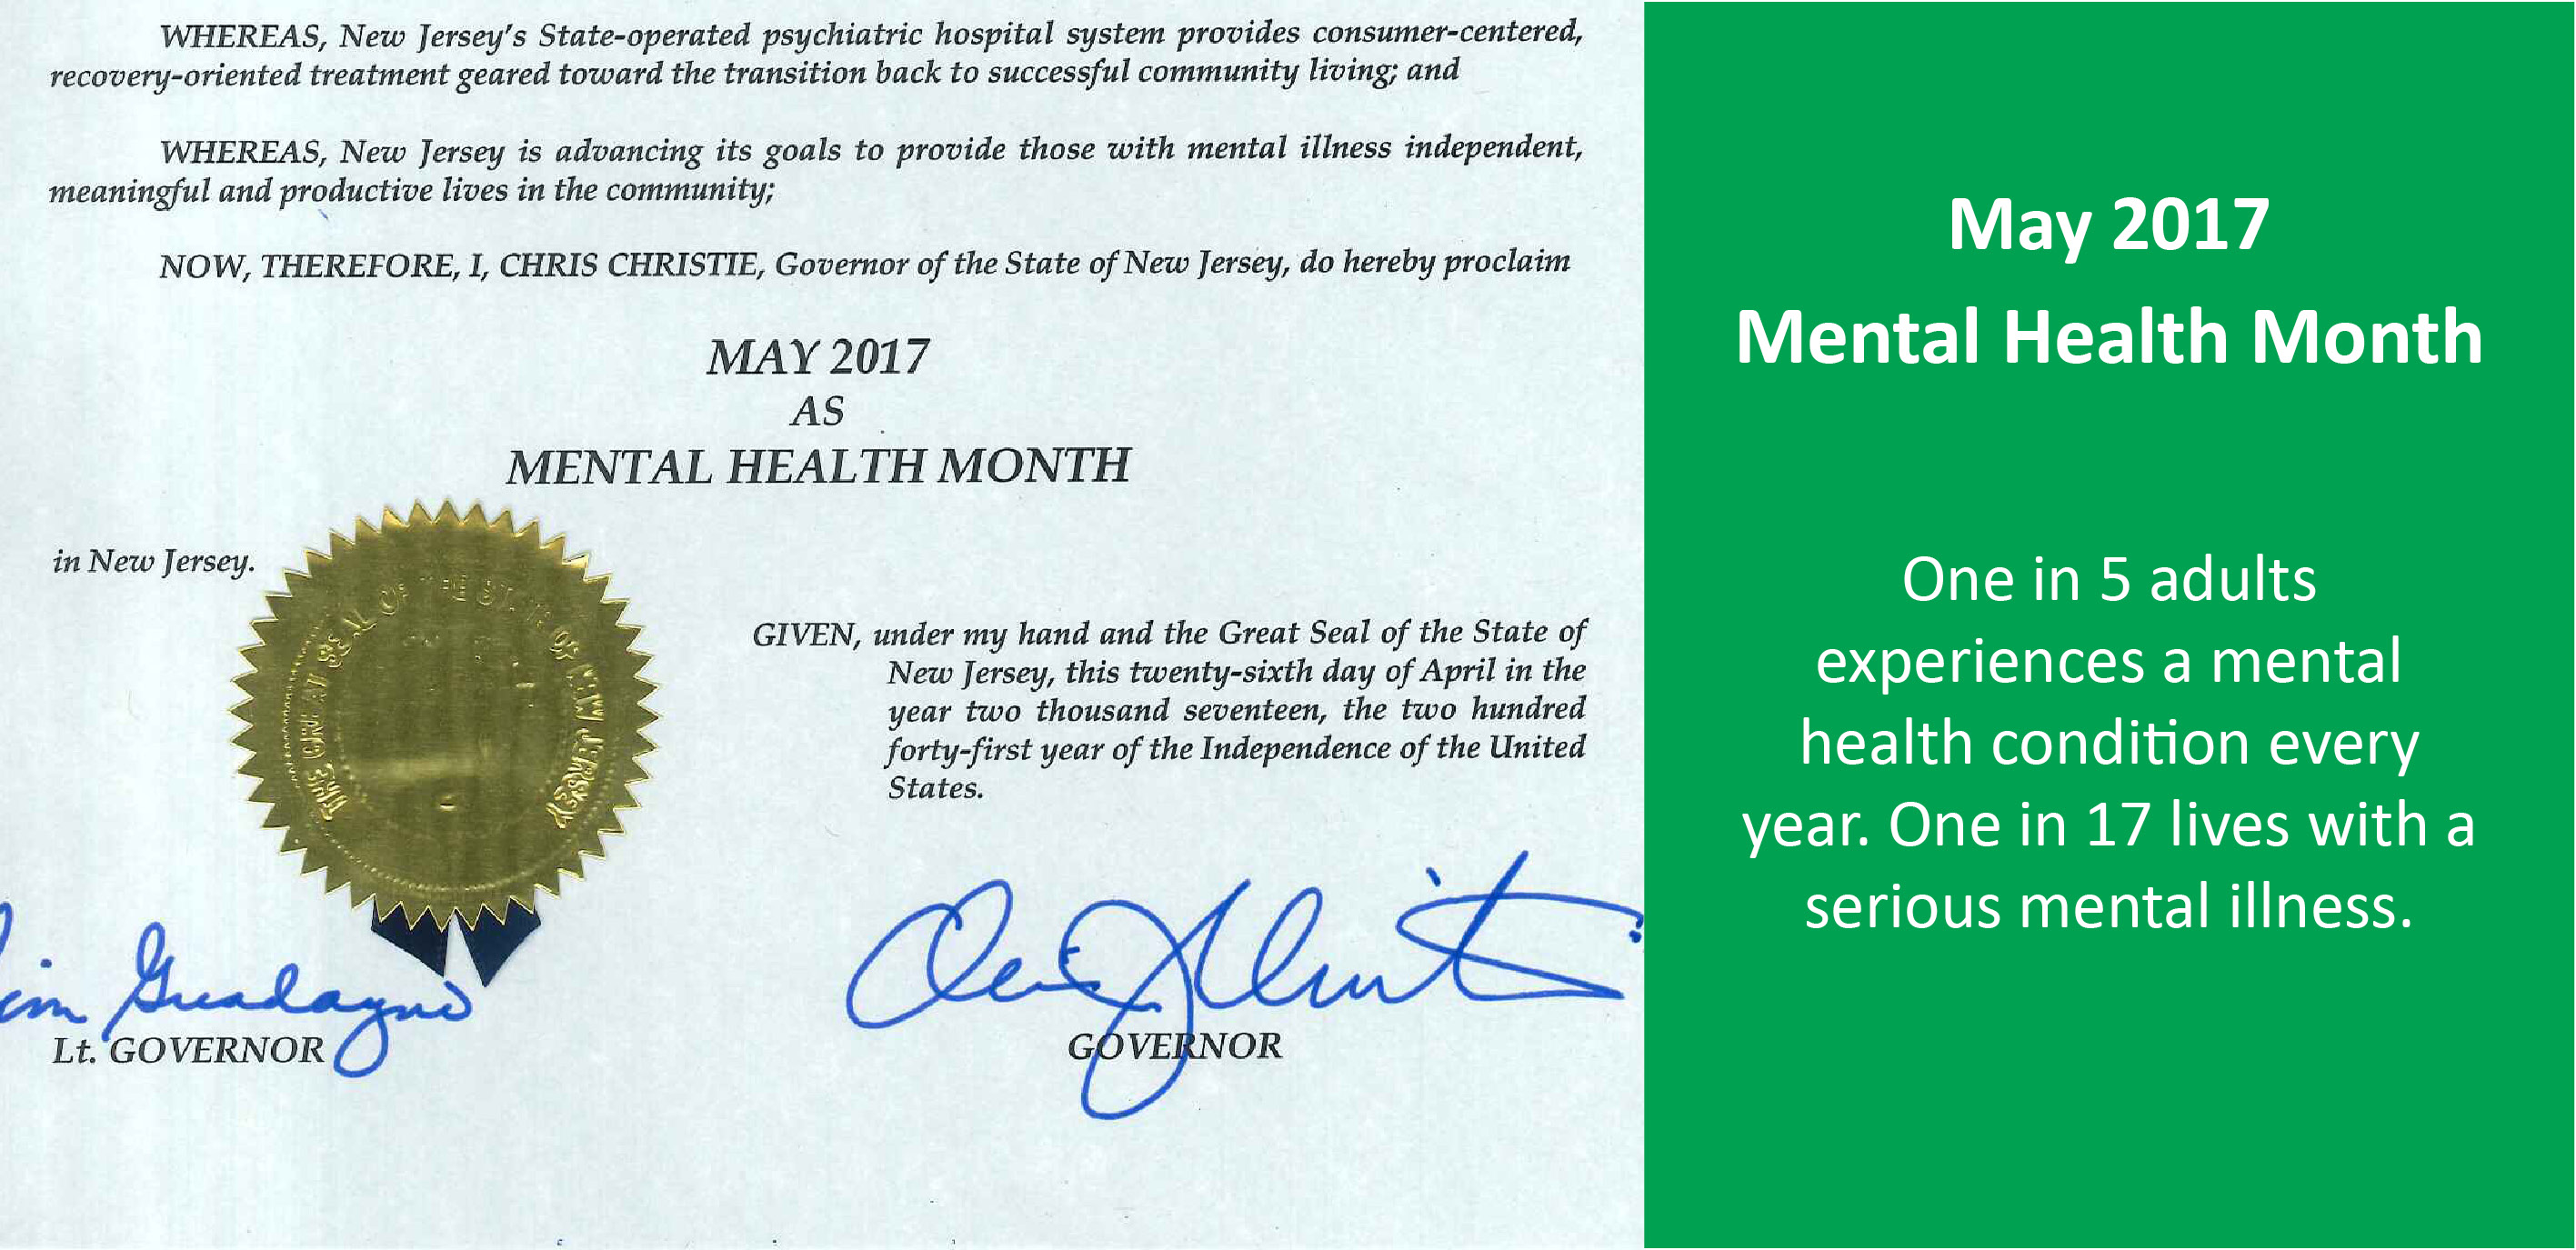 Mental Health Month Proclamation